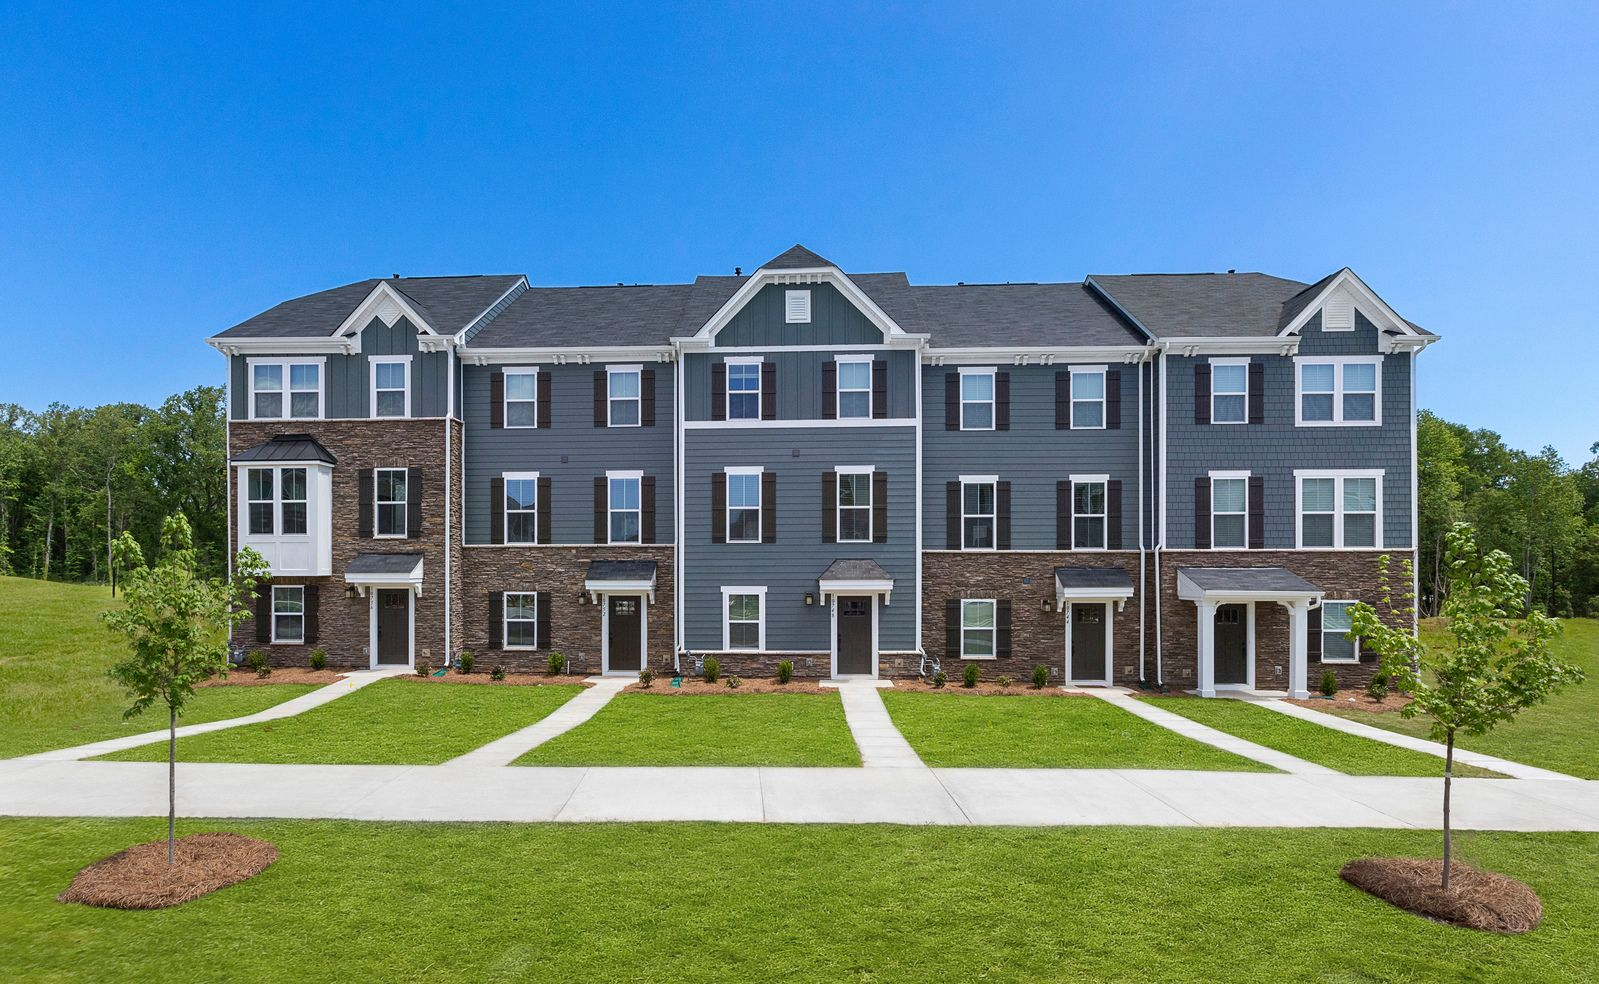 Winding Brook is now sold out!:Lowest priced 3-bedroom, 2-car garage luxury townhomes in Hanover! Why rent when you can invest in your future?Schedule a visit to find out howyou canpurchasea home w/ $0 down financing!